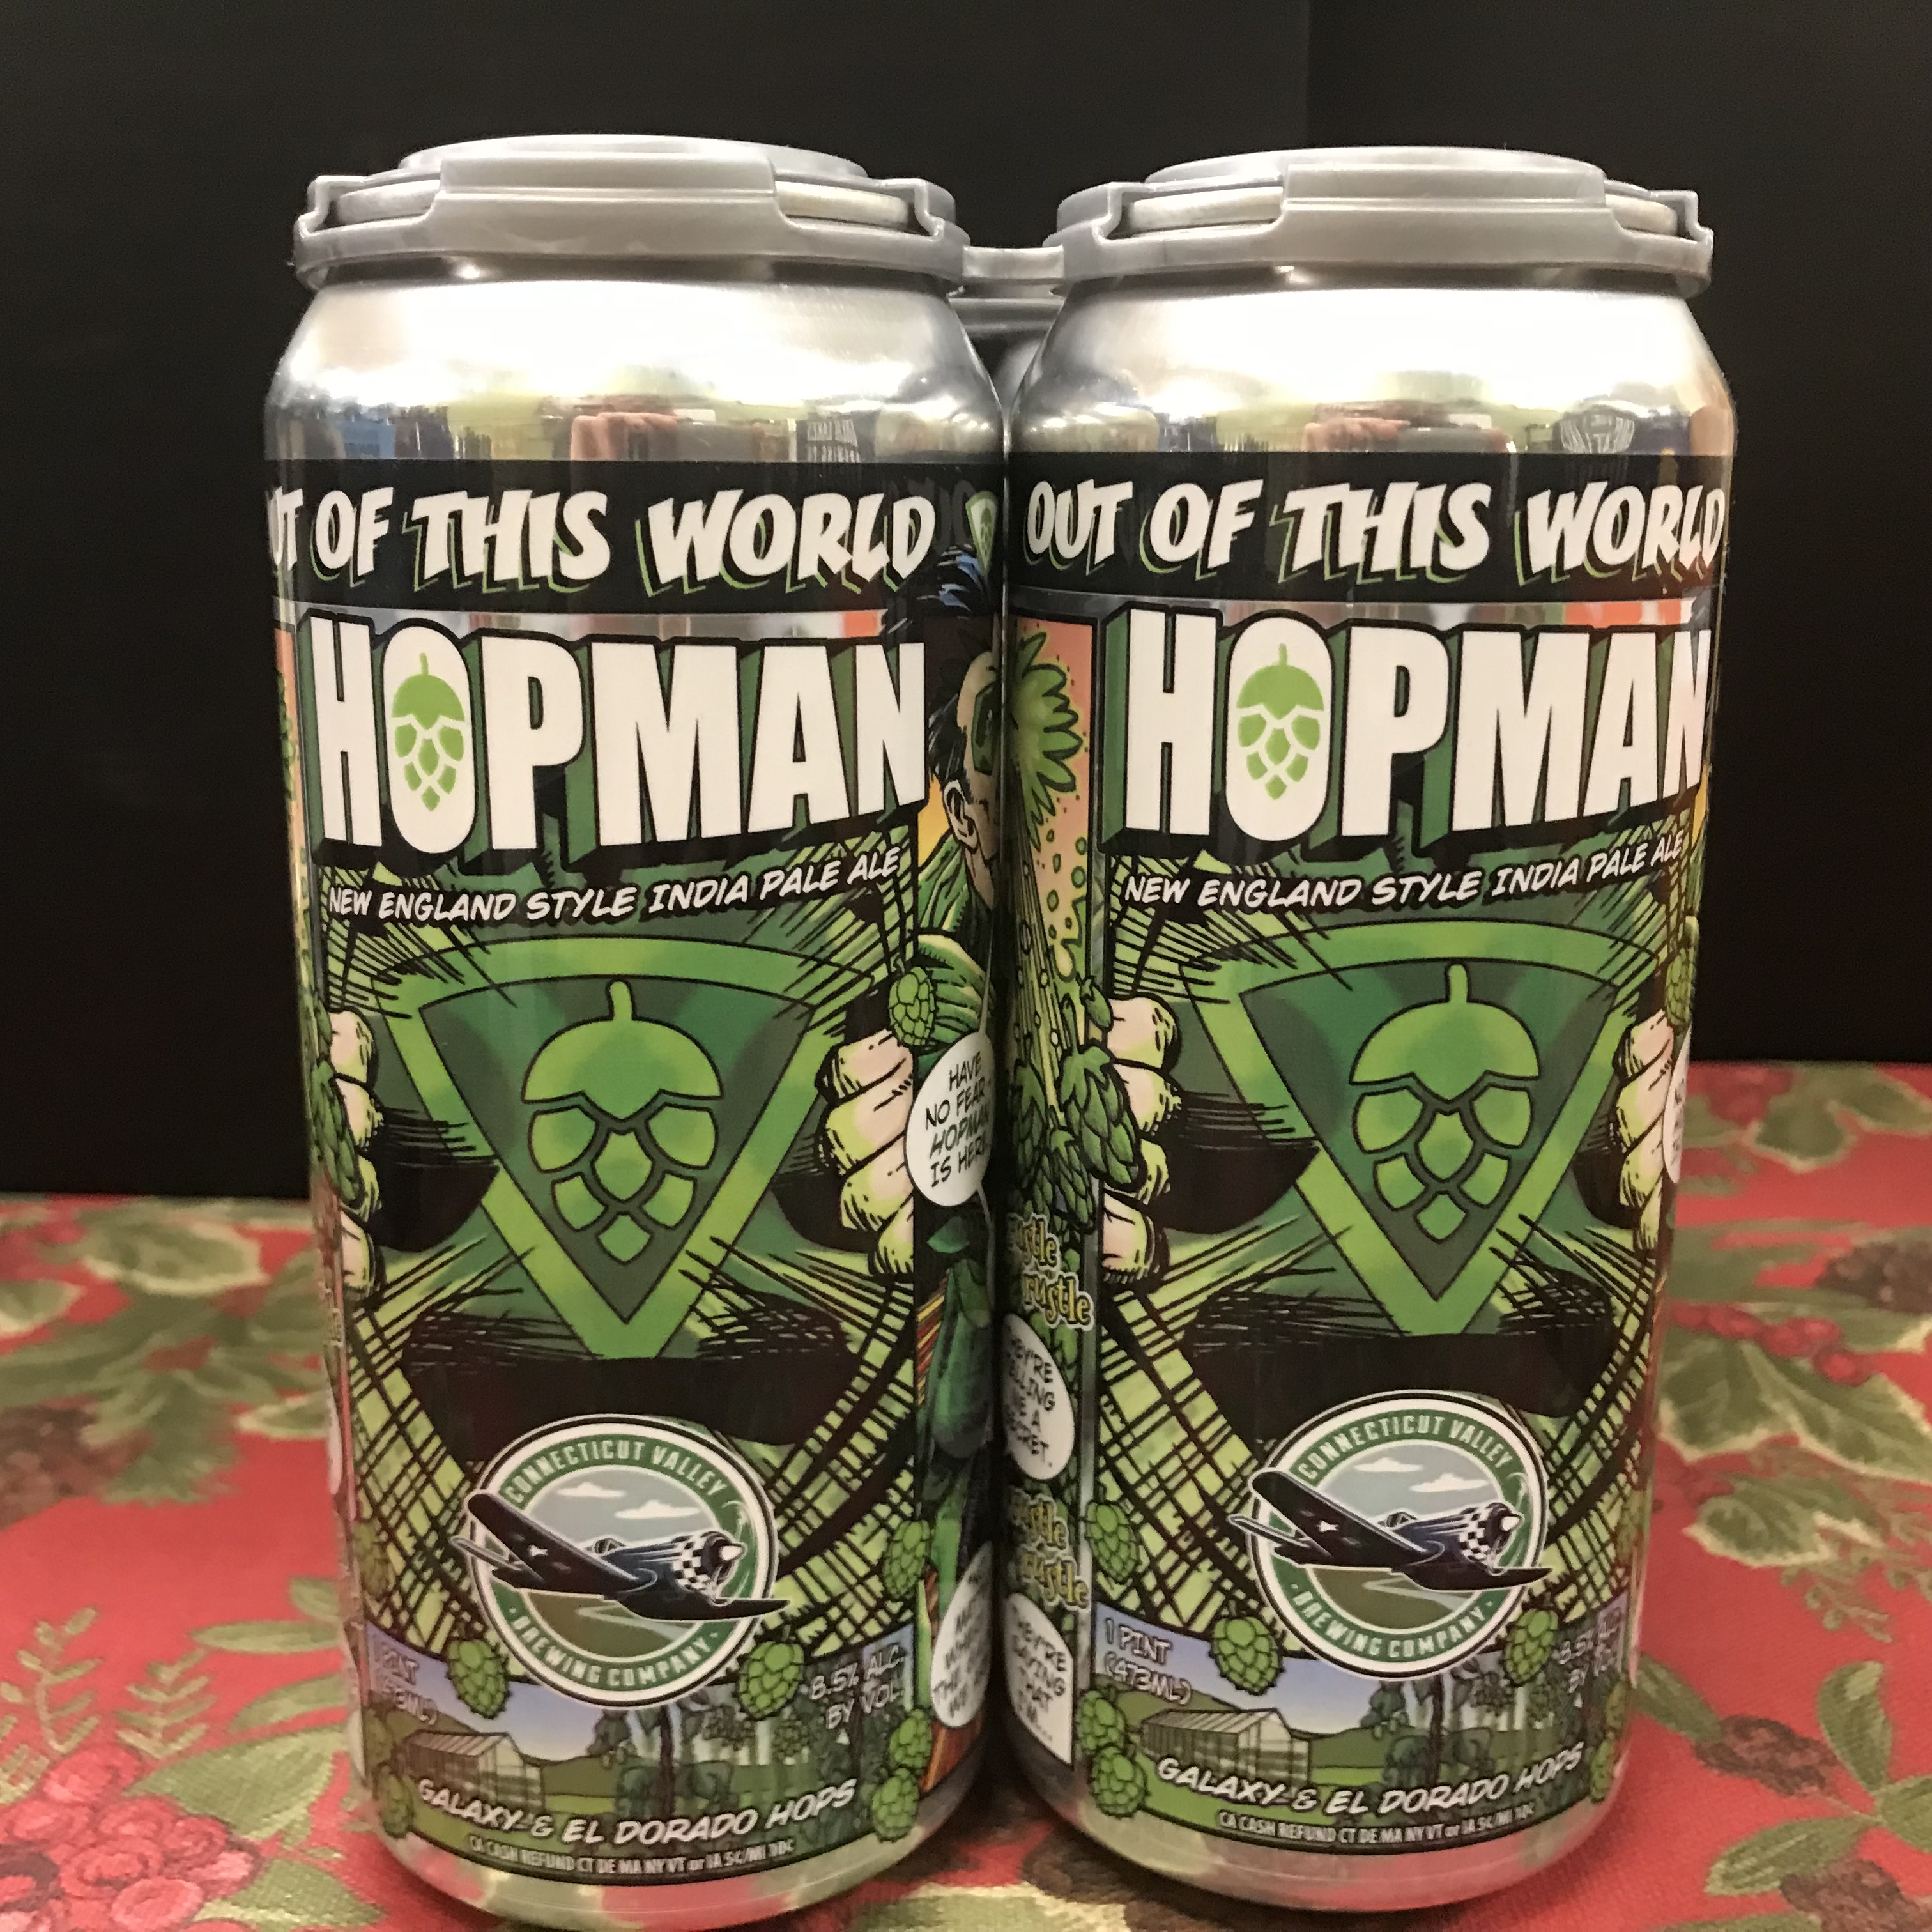 Connecticut V. Brewing Out of this World Hopman IPA 4 x 1 pint